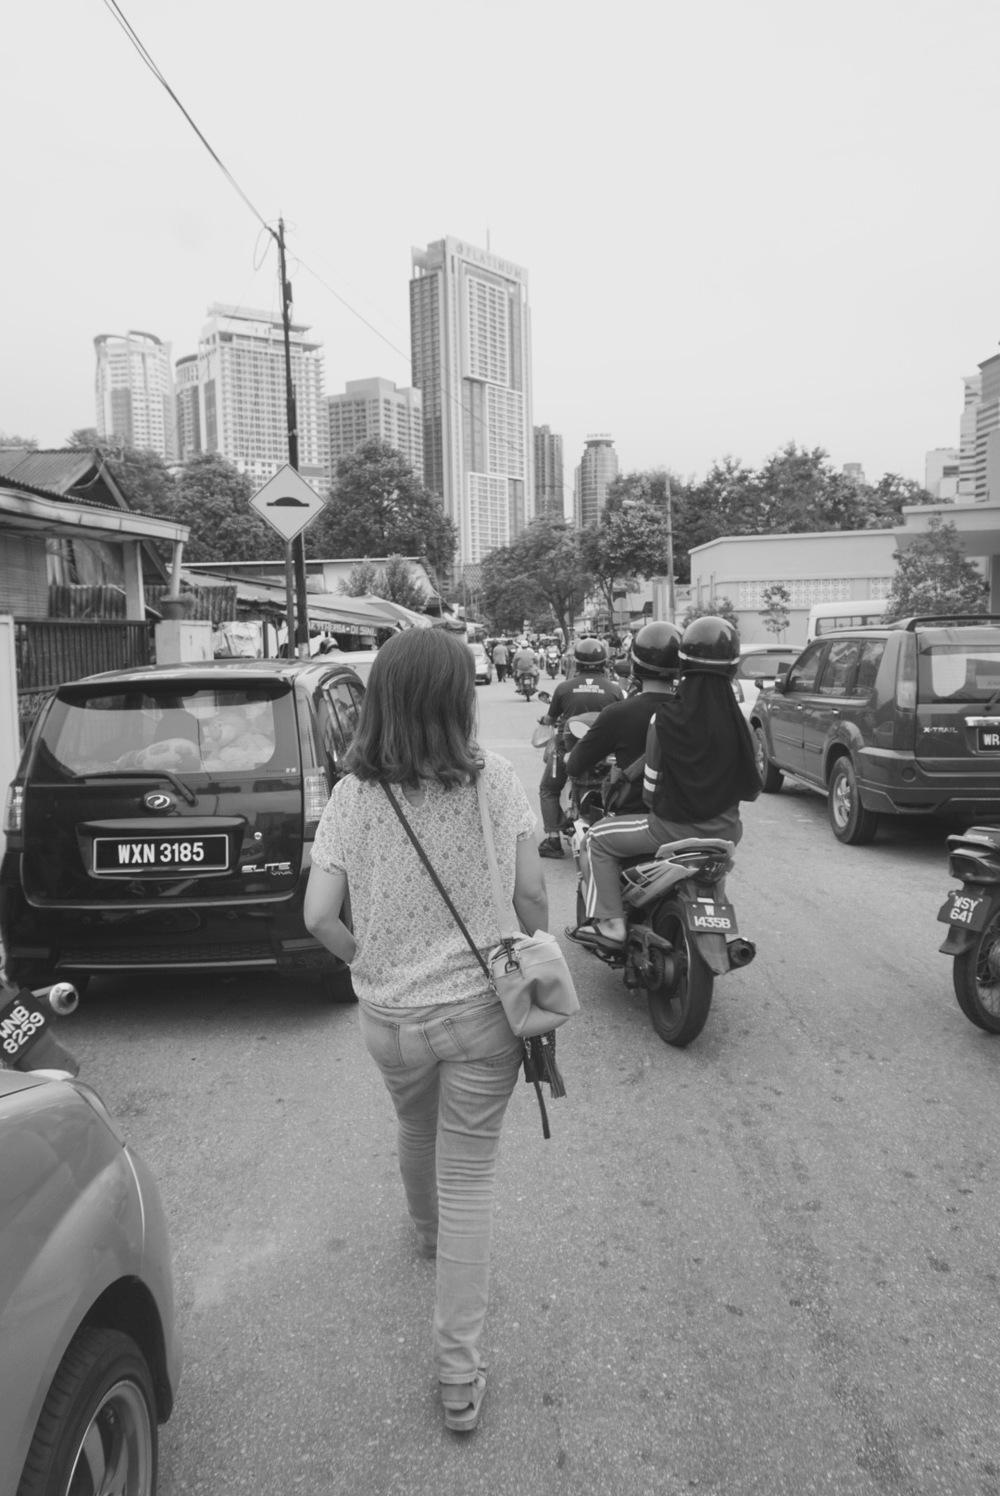 Weaving my way down the streets of Kampung Baru - in the company of many a motorbike!